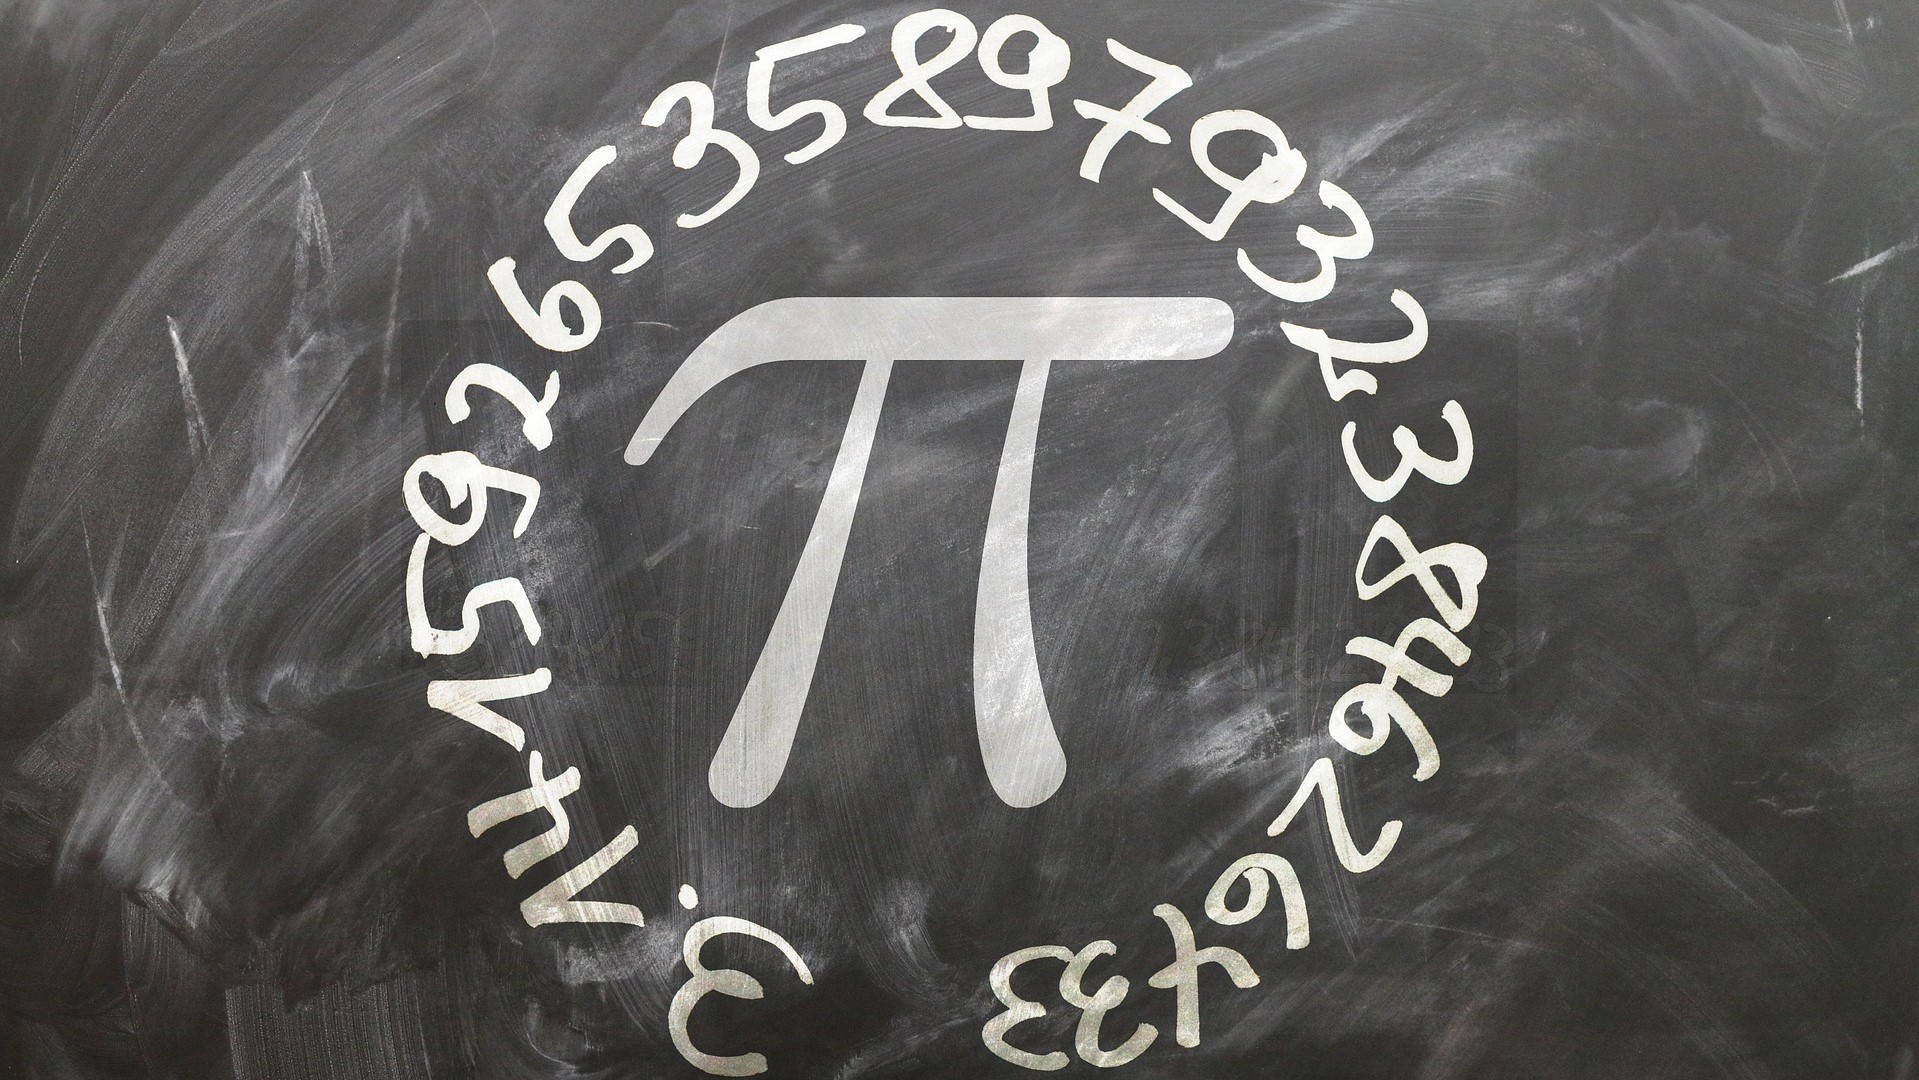 Google employee breaks the world record for calculating the value of pi